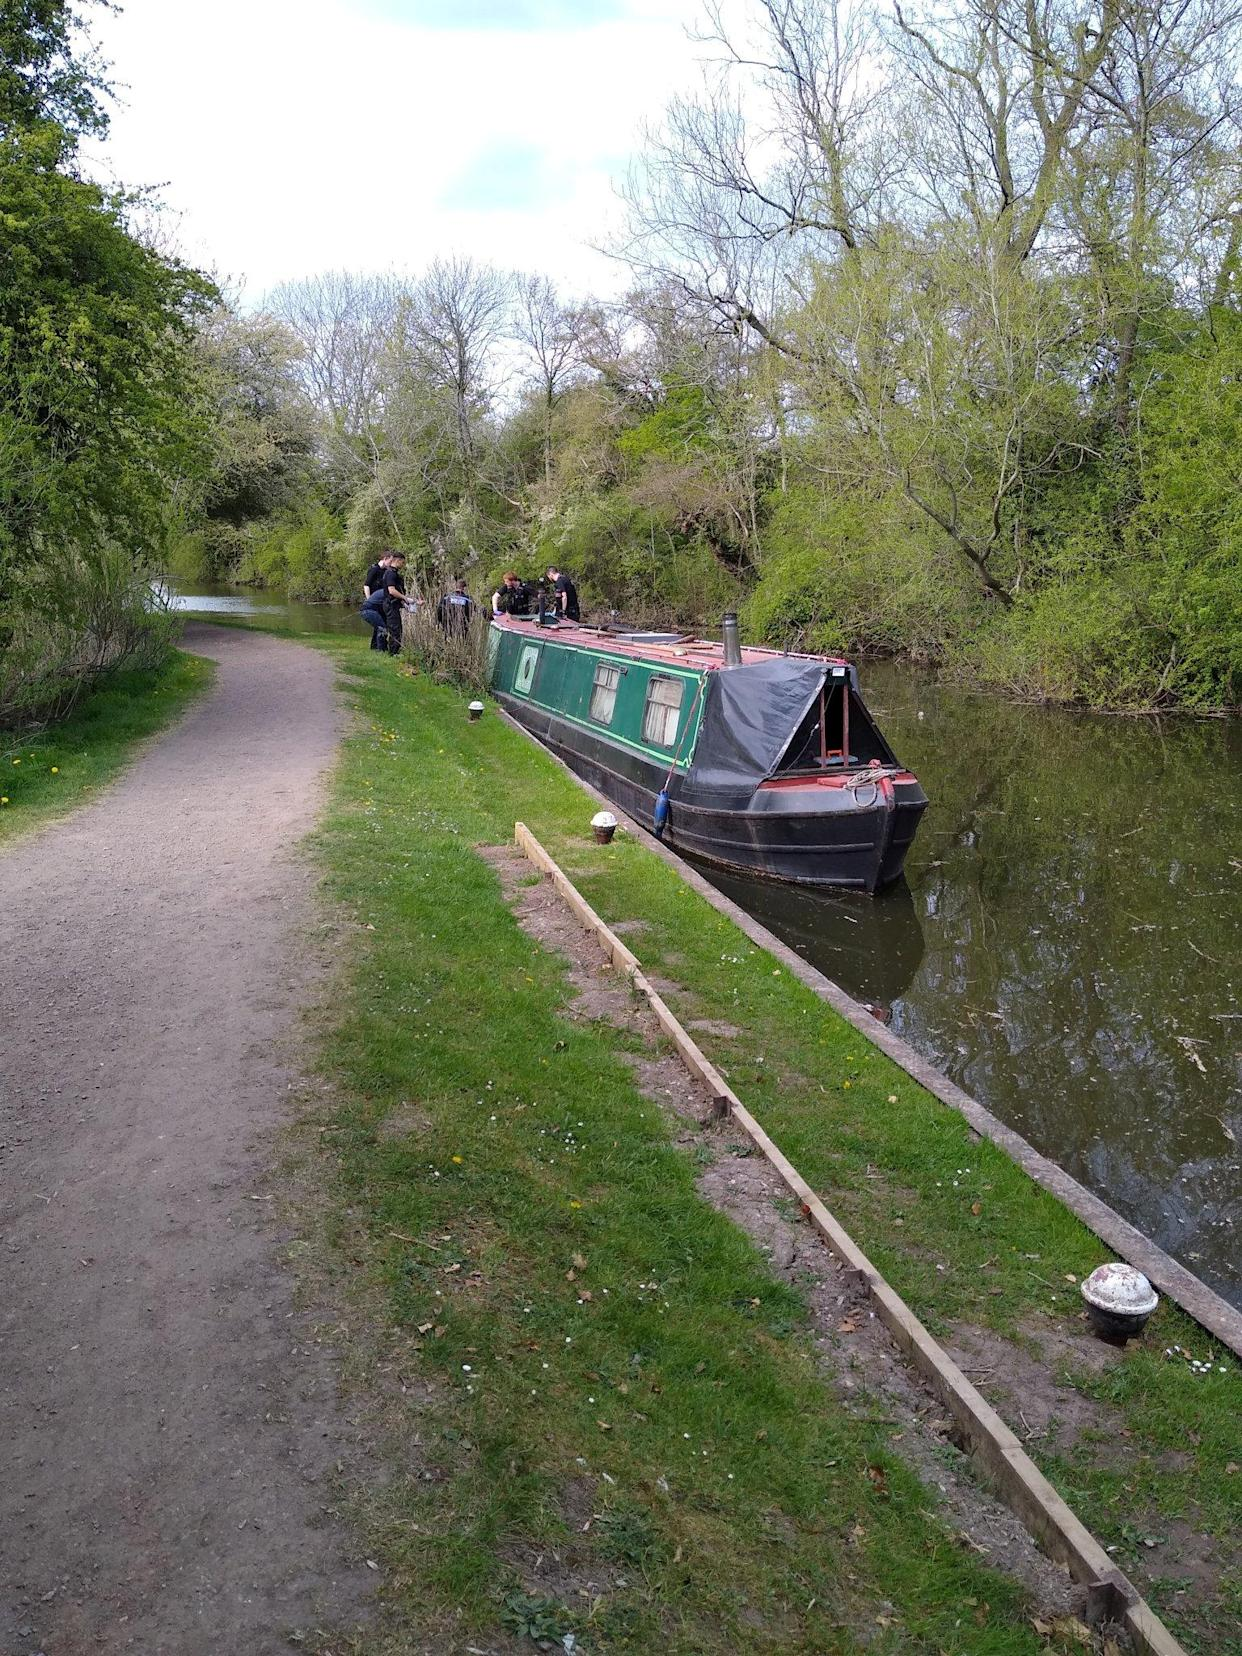 The man was arrested when he stepped off to negotiate a lock in Glen Parva. (SWNS)